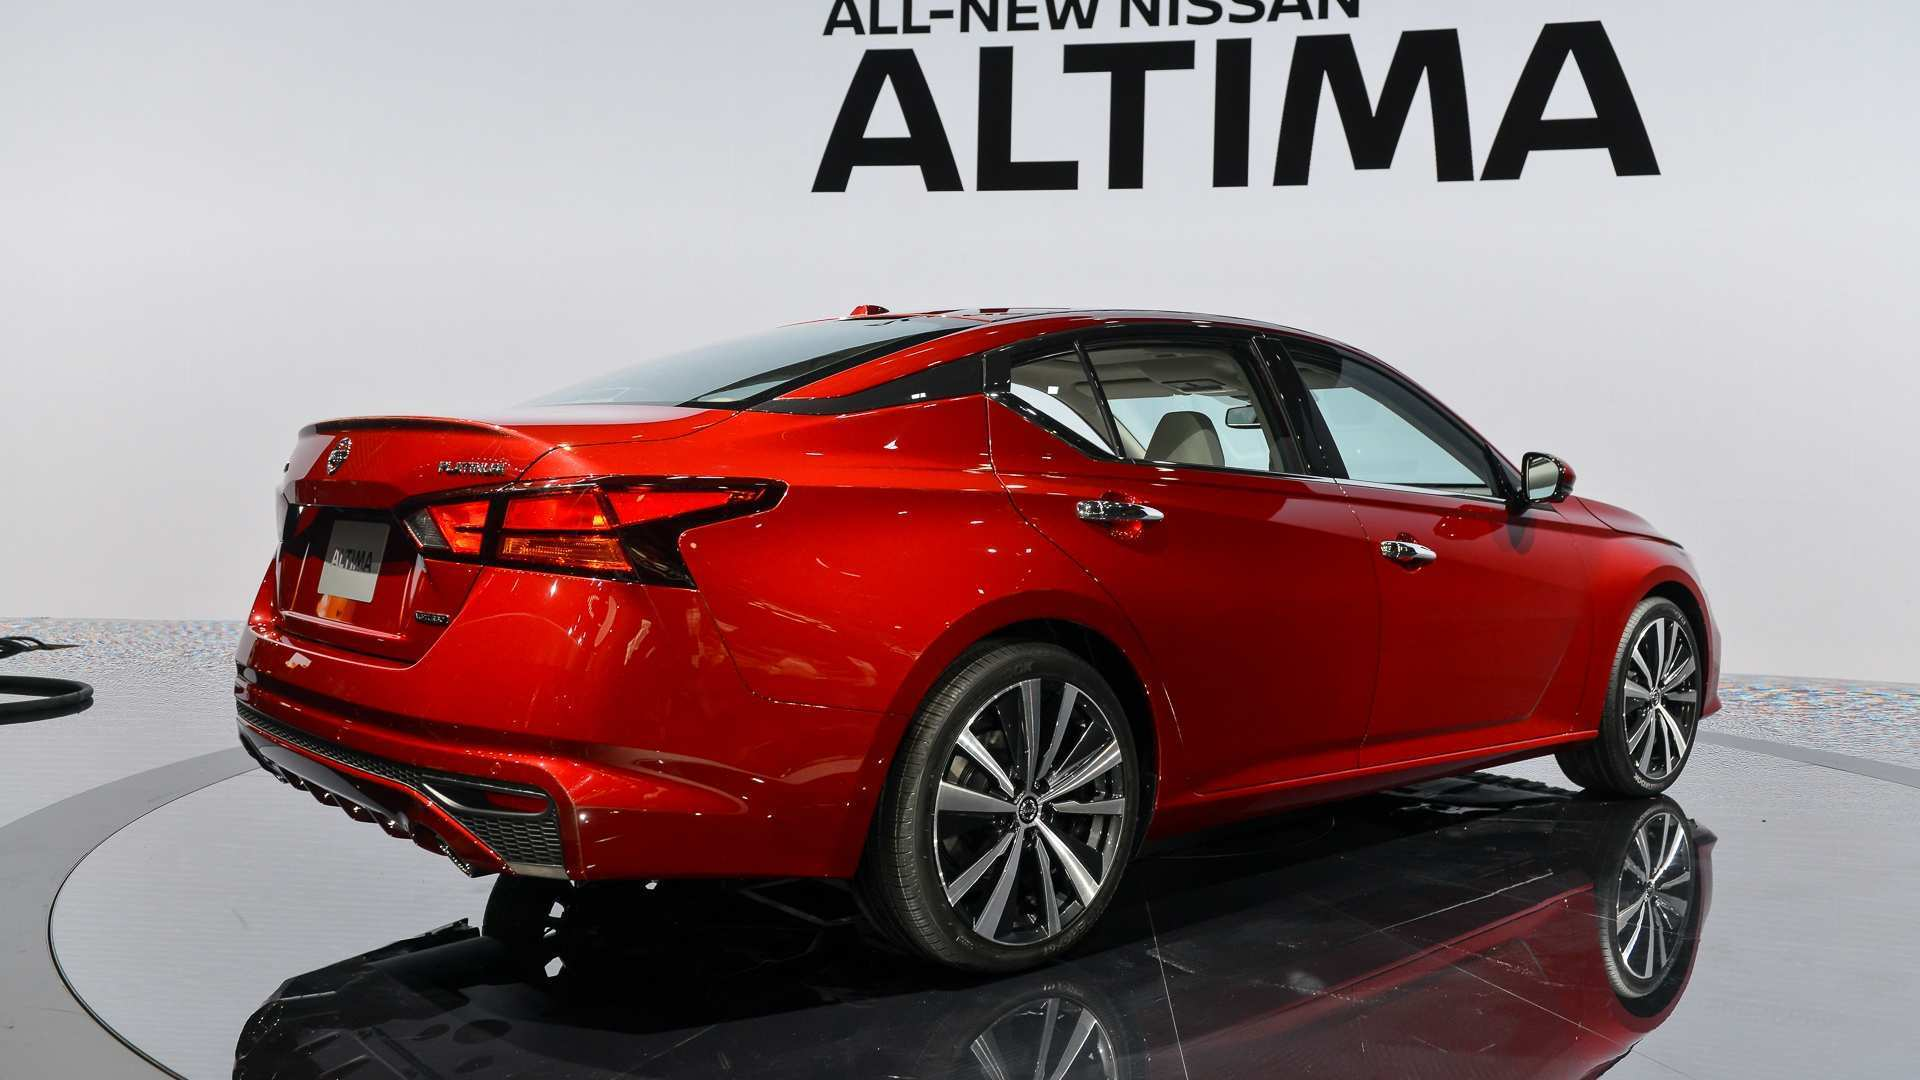 29 Concept of 2020 Nissan Altima Horsepower Photos by 2020 Nissan Altima Horsepower